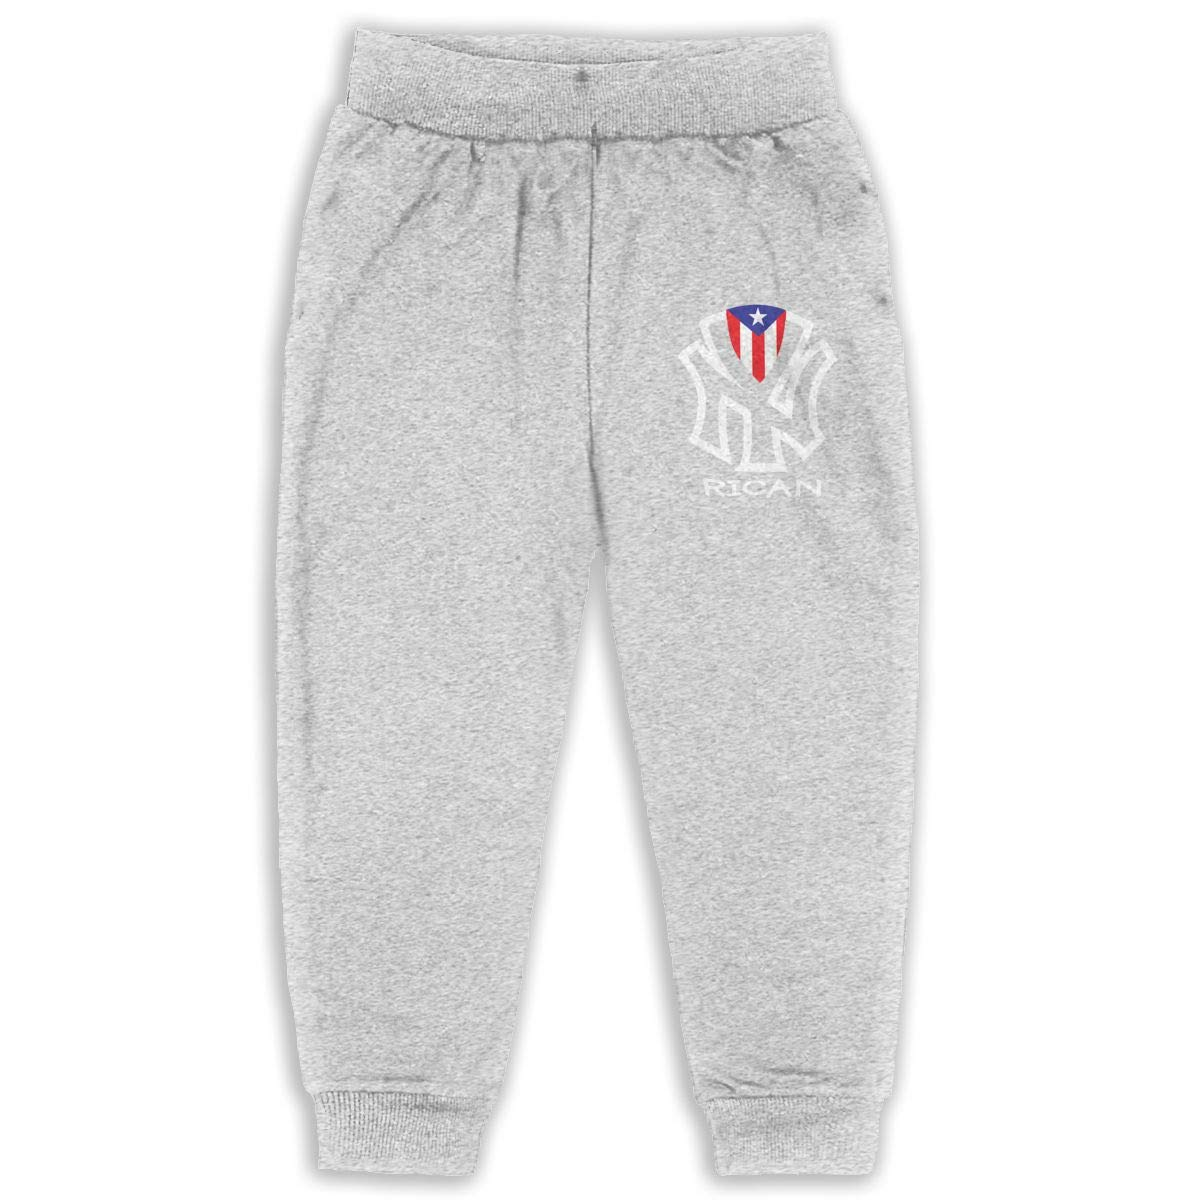 Puerto Rico New York Children Active Jogger Sweatpants Basic Elastic Sport Pants Gray